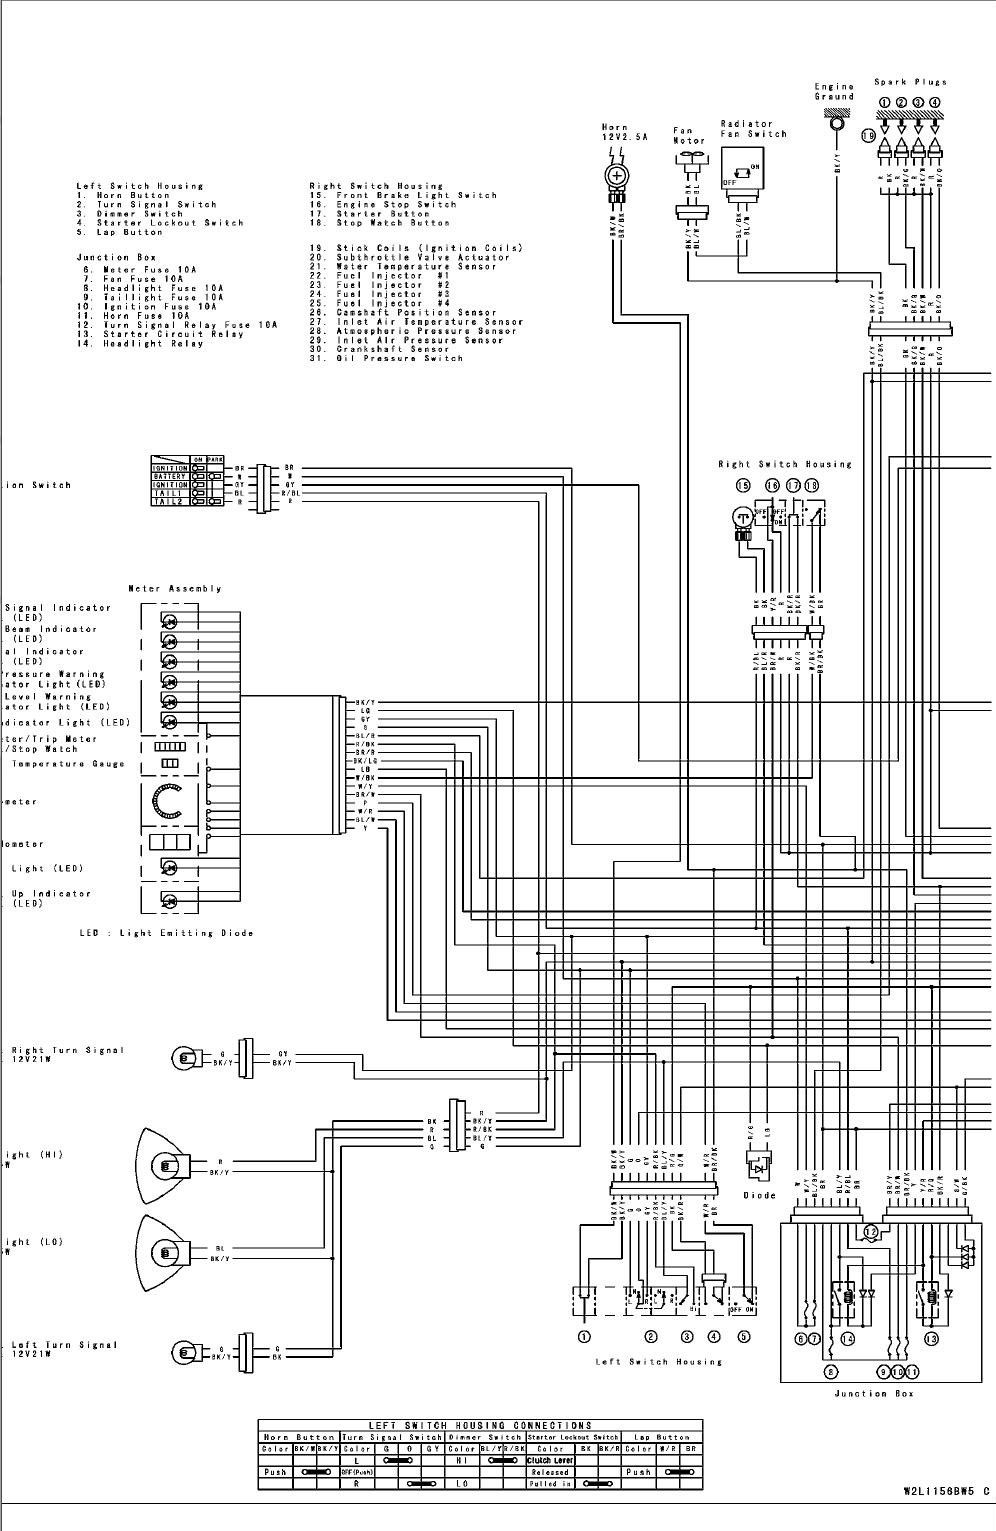 Kawasaki Ninja 600 Wiring Diagram Library Schematic Detailed On Of This Motorcyclethis 06 636 Basic U2022 Rh Rnetcomputer Co Zx6r Ignition